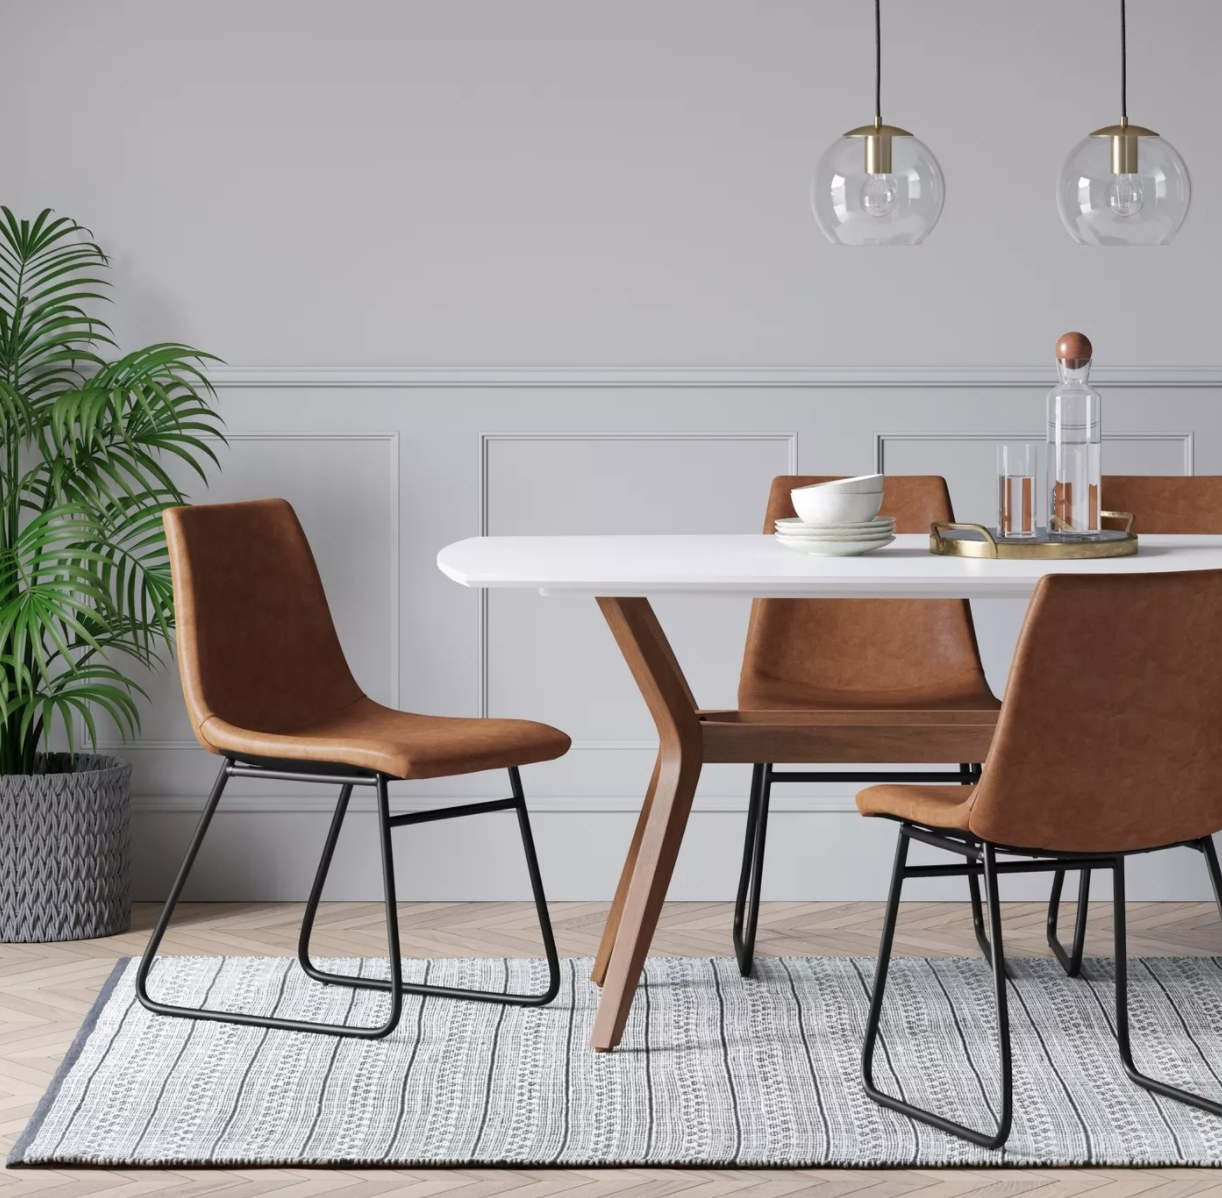 Four brown faux leather dining chairs with metal legs